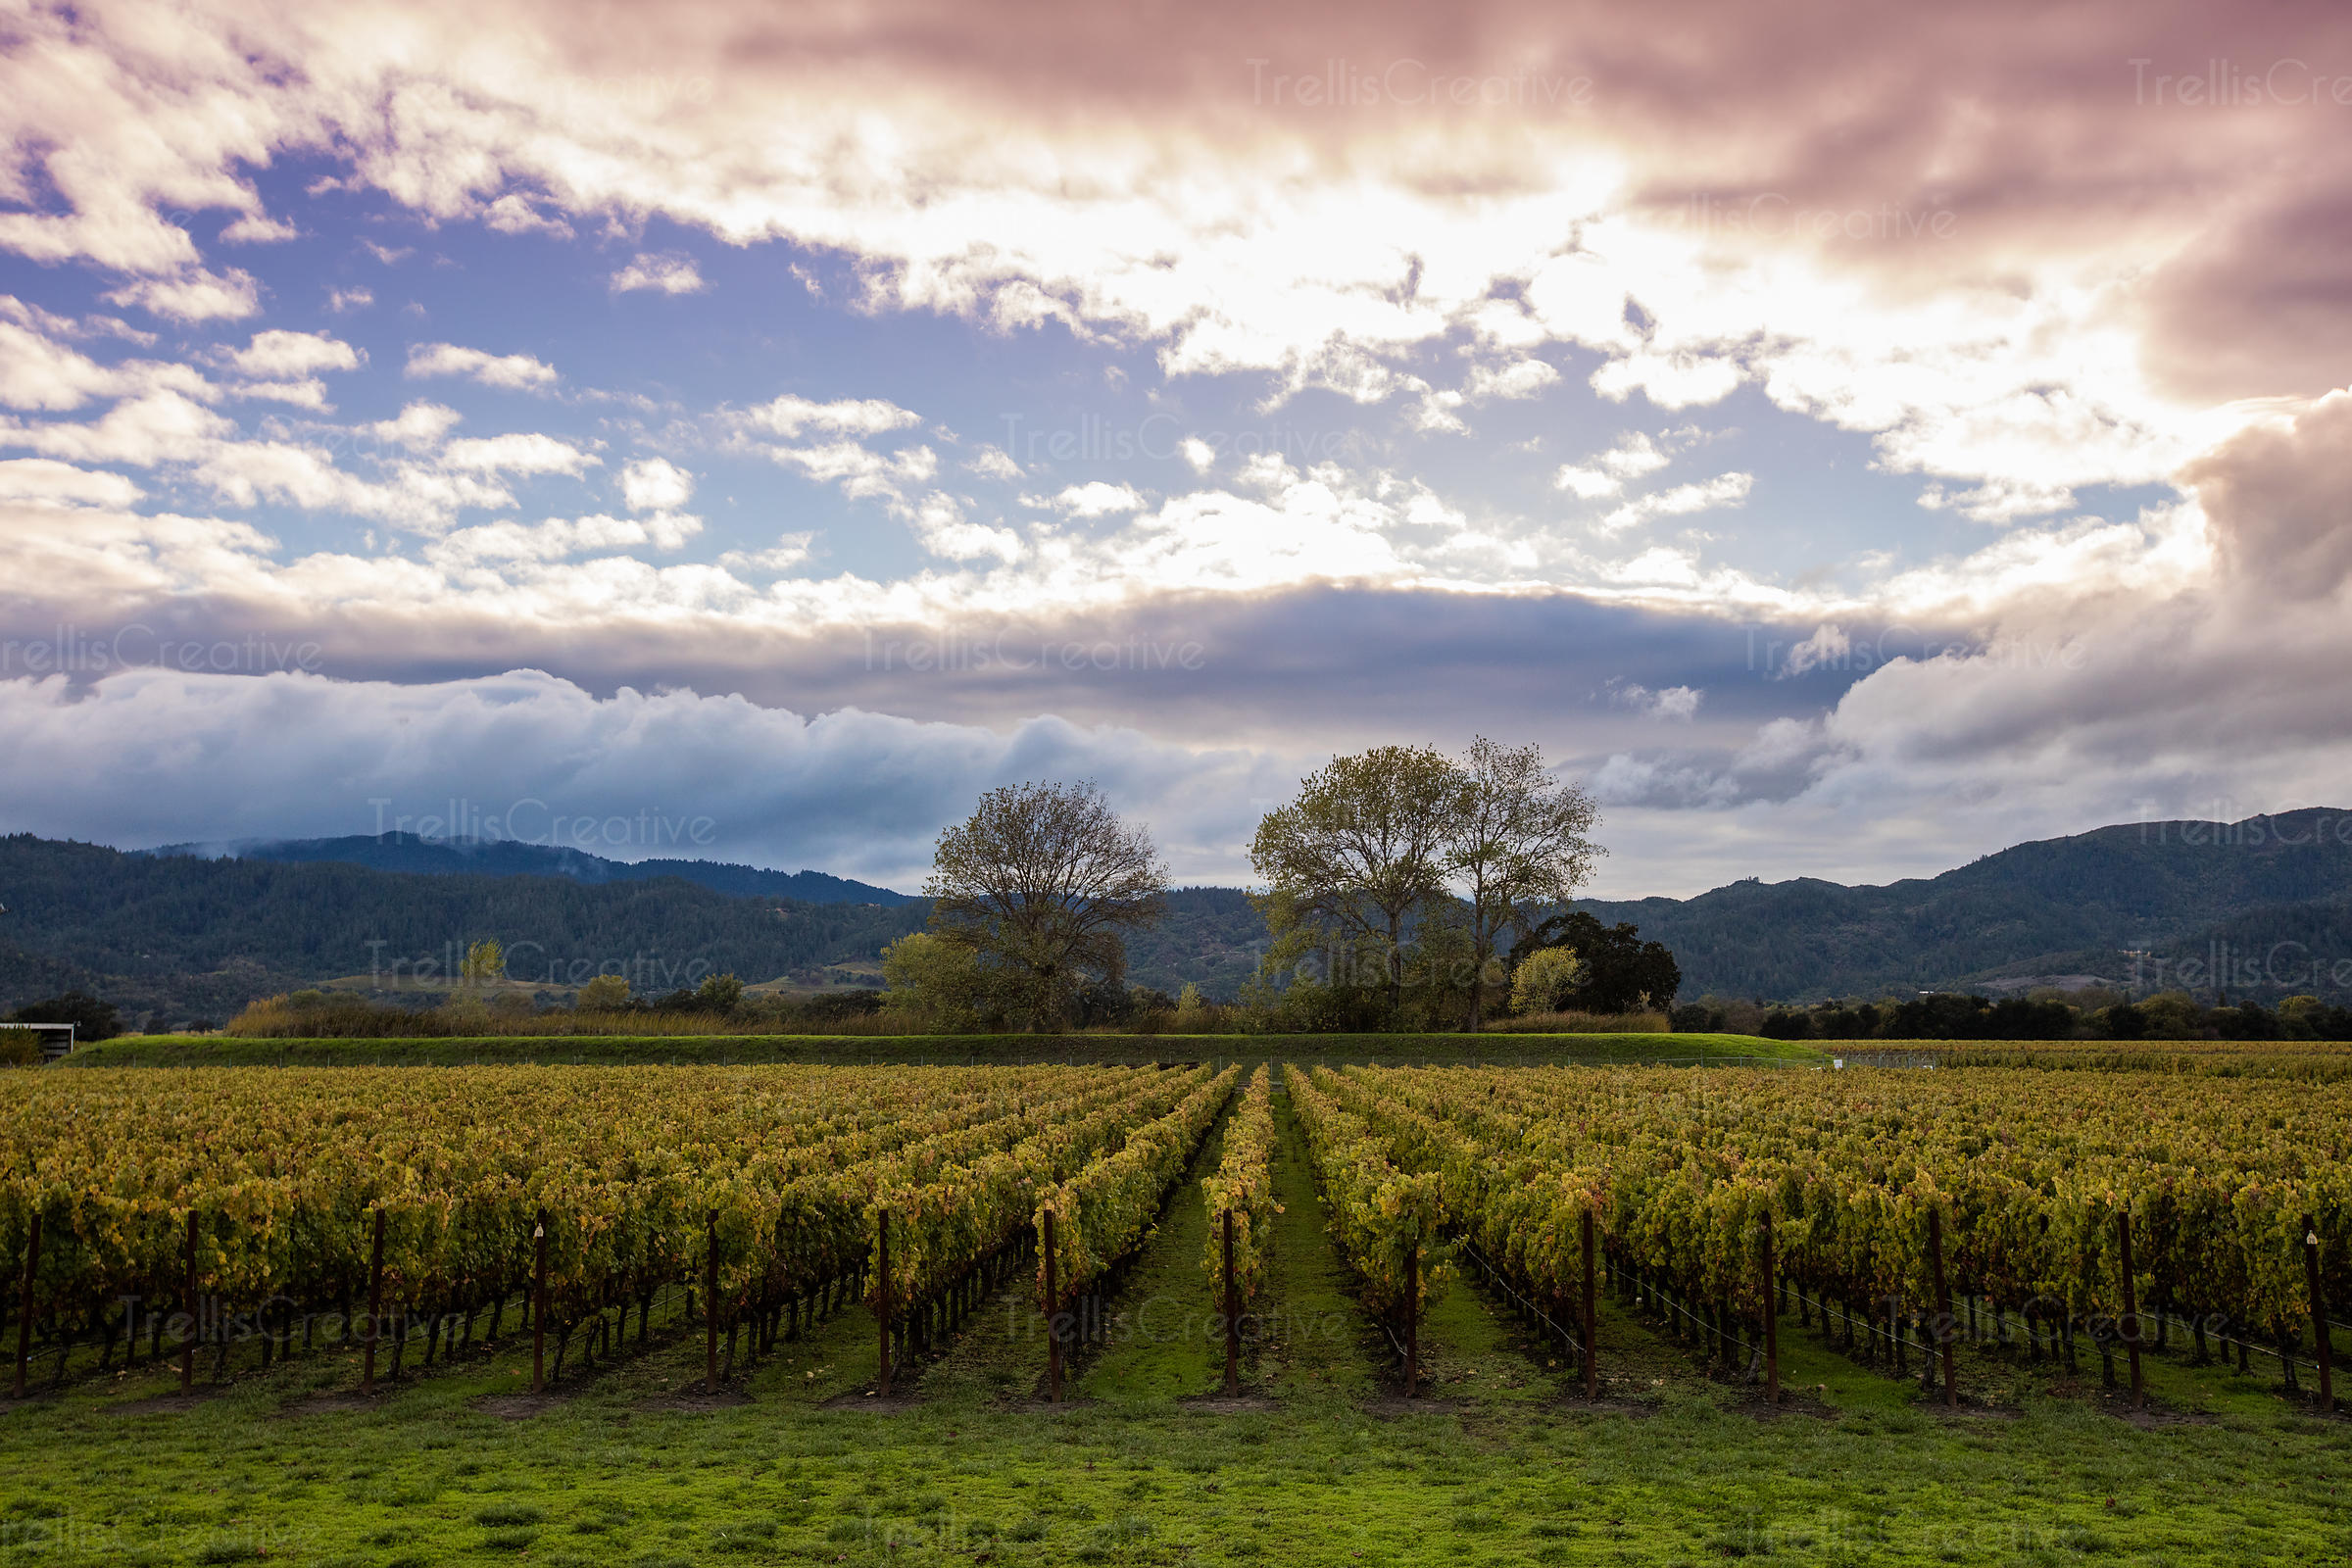 Stunning view of vineyard landscape against a stormy sky